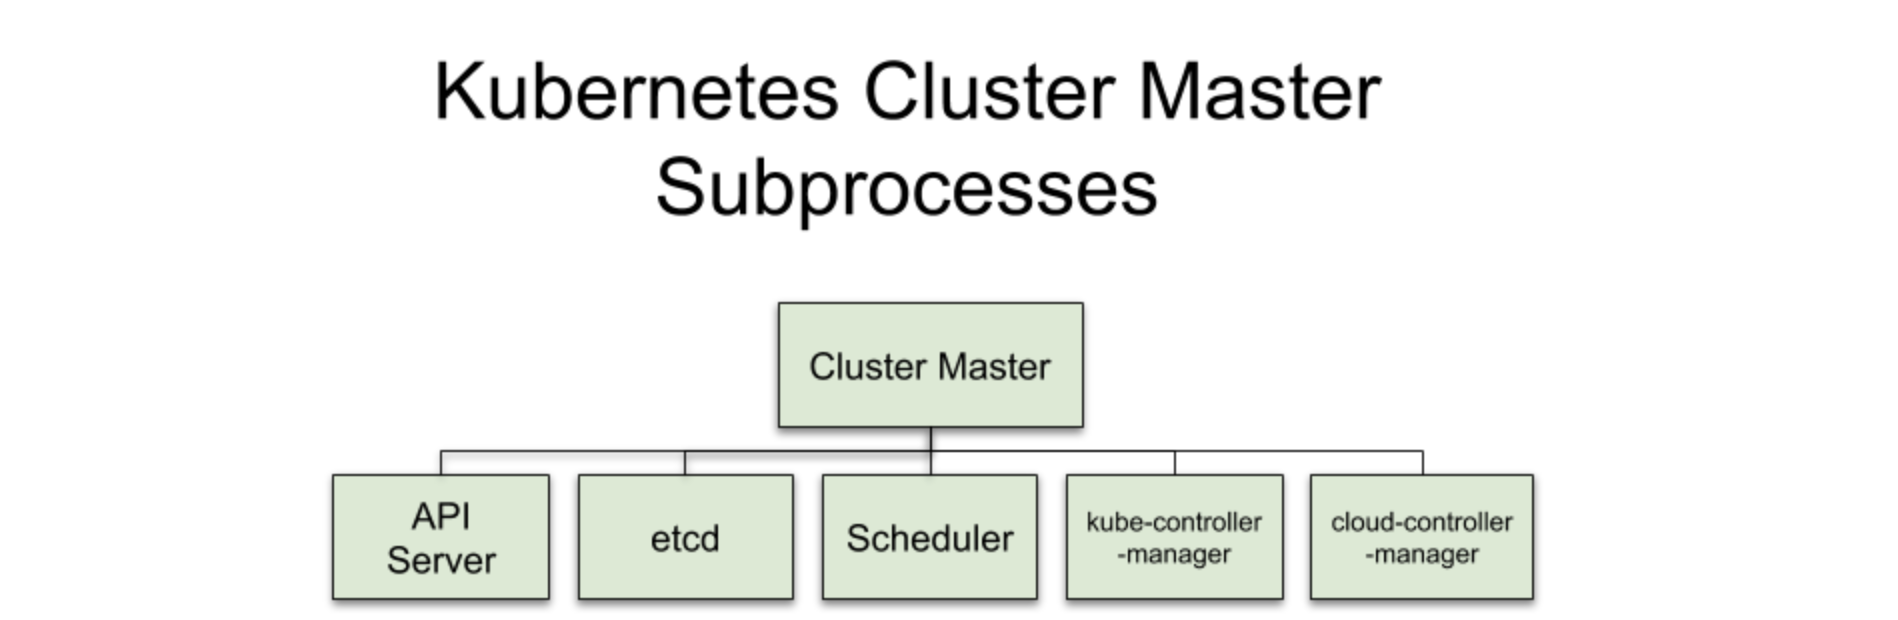 Cluster Master subprocesses